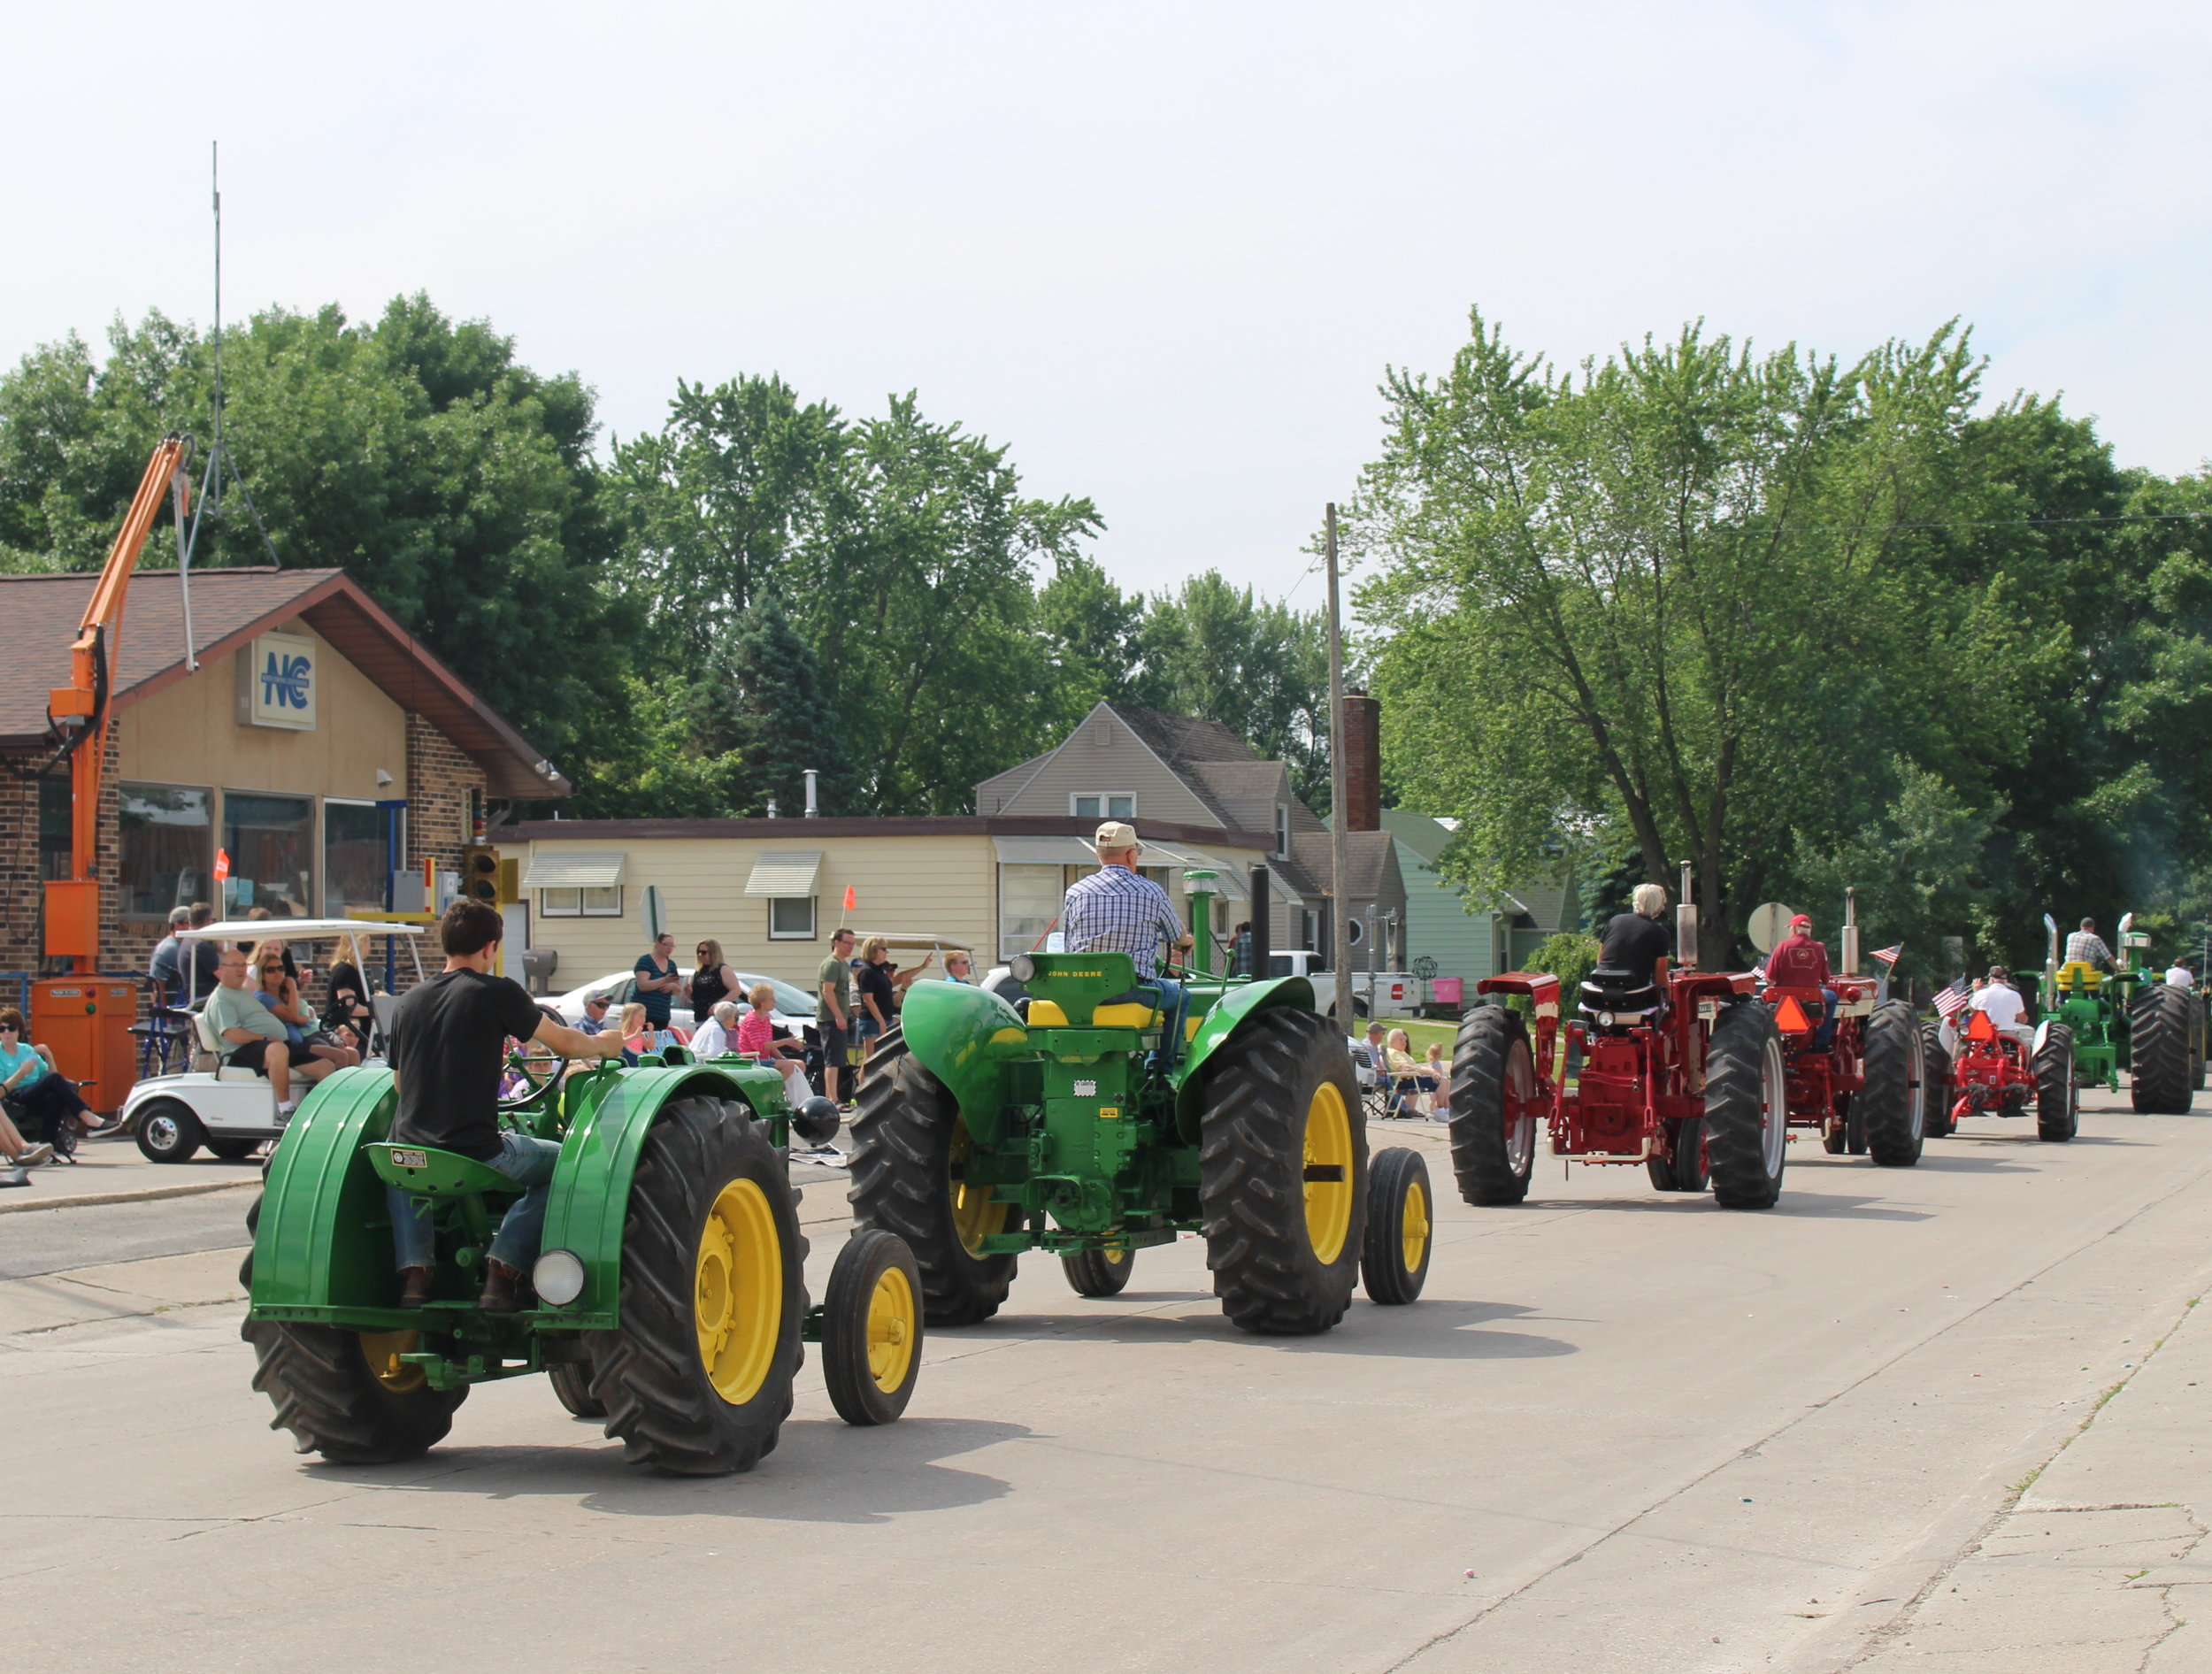 Tractors in the Festival Parade